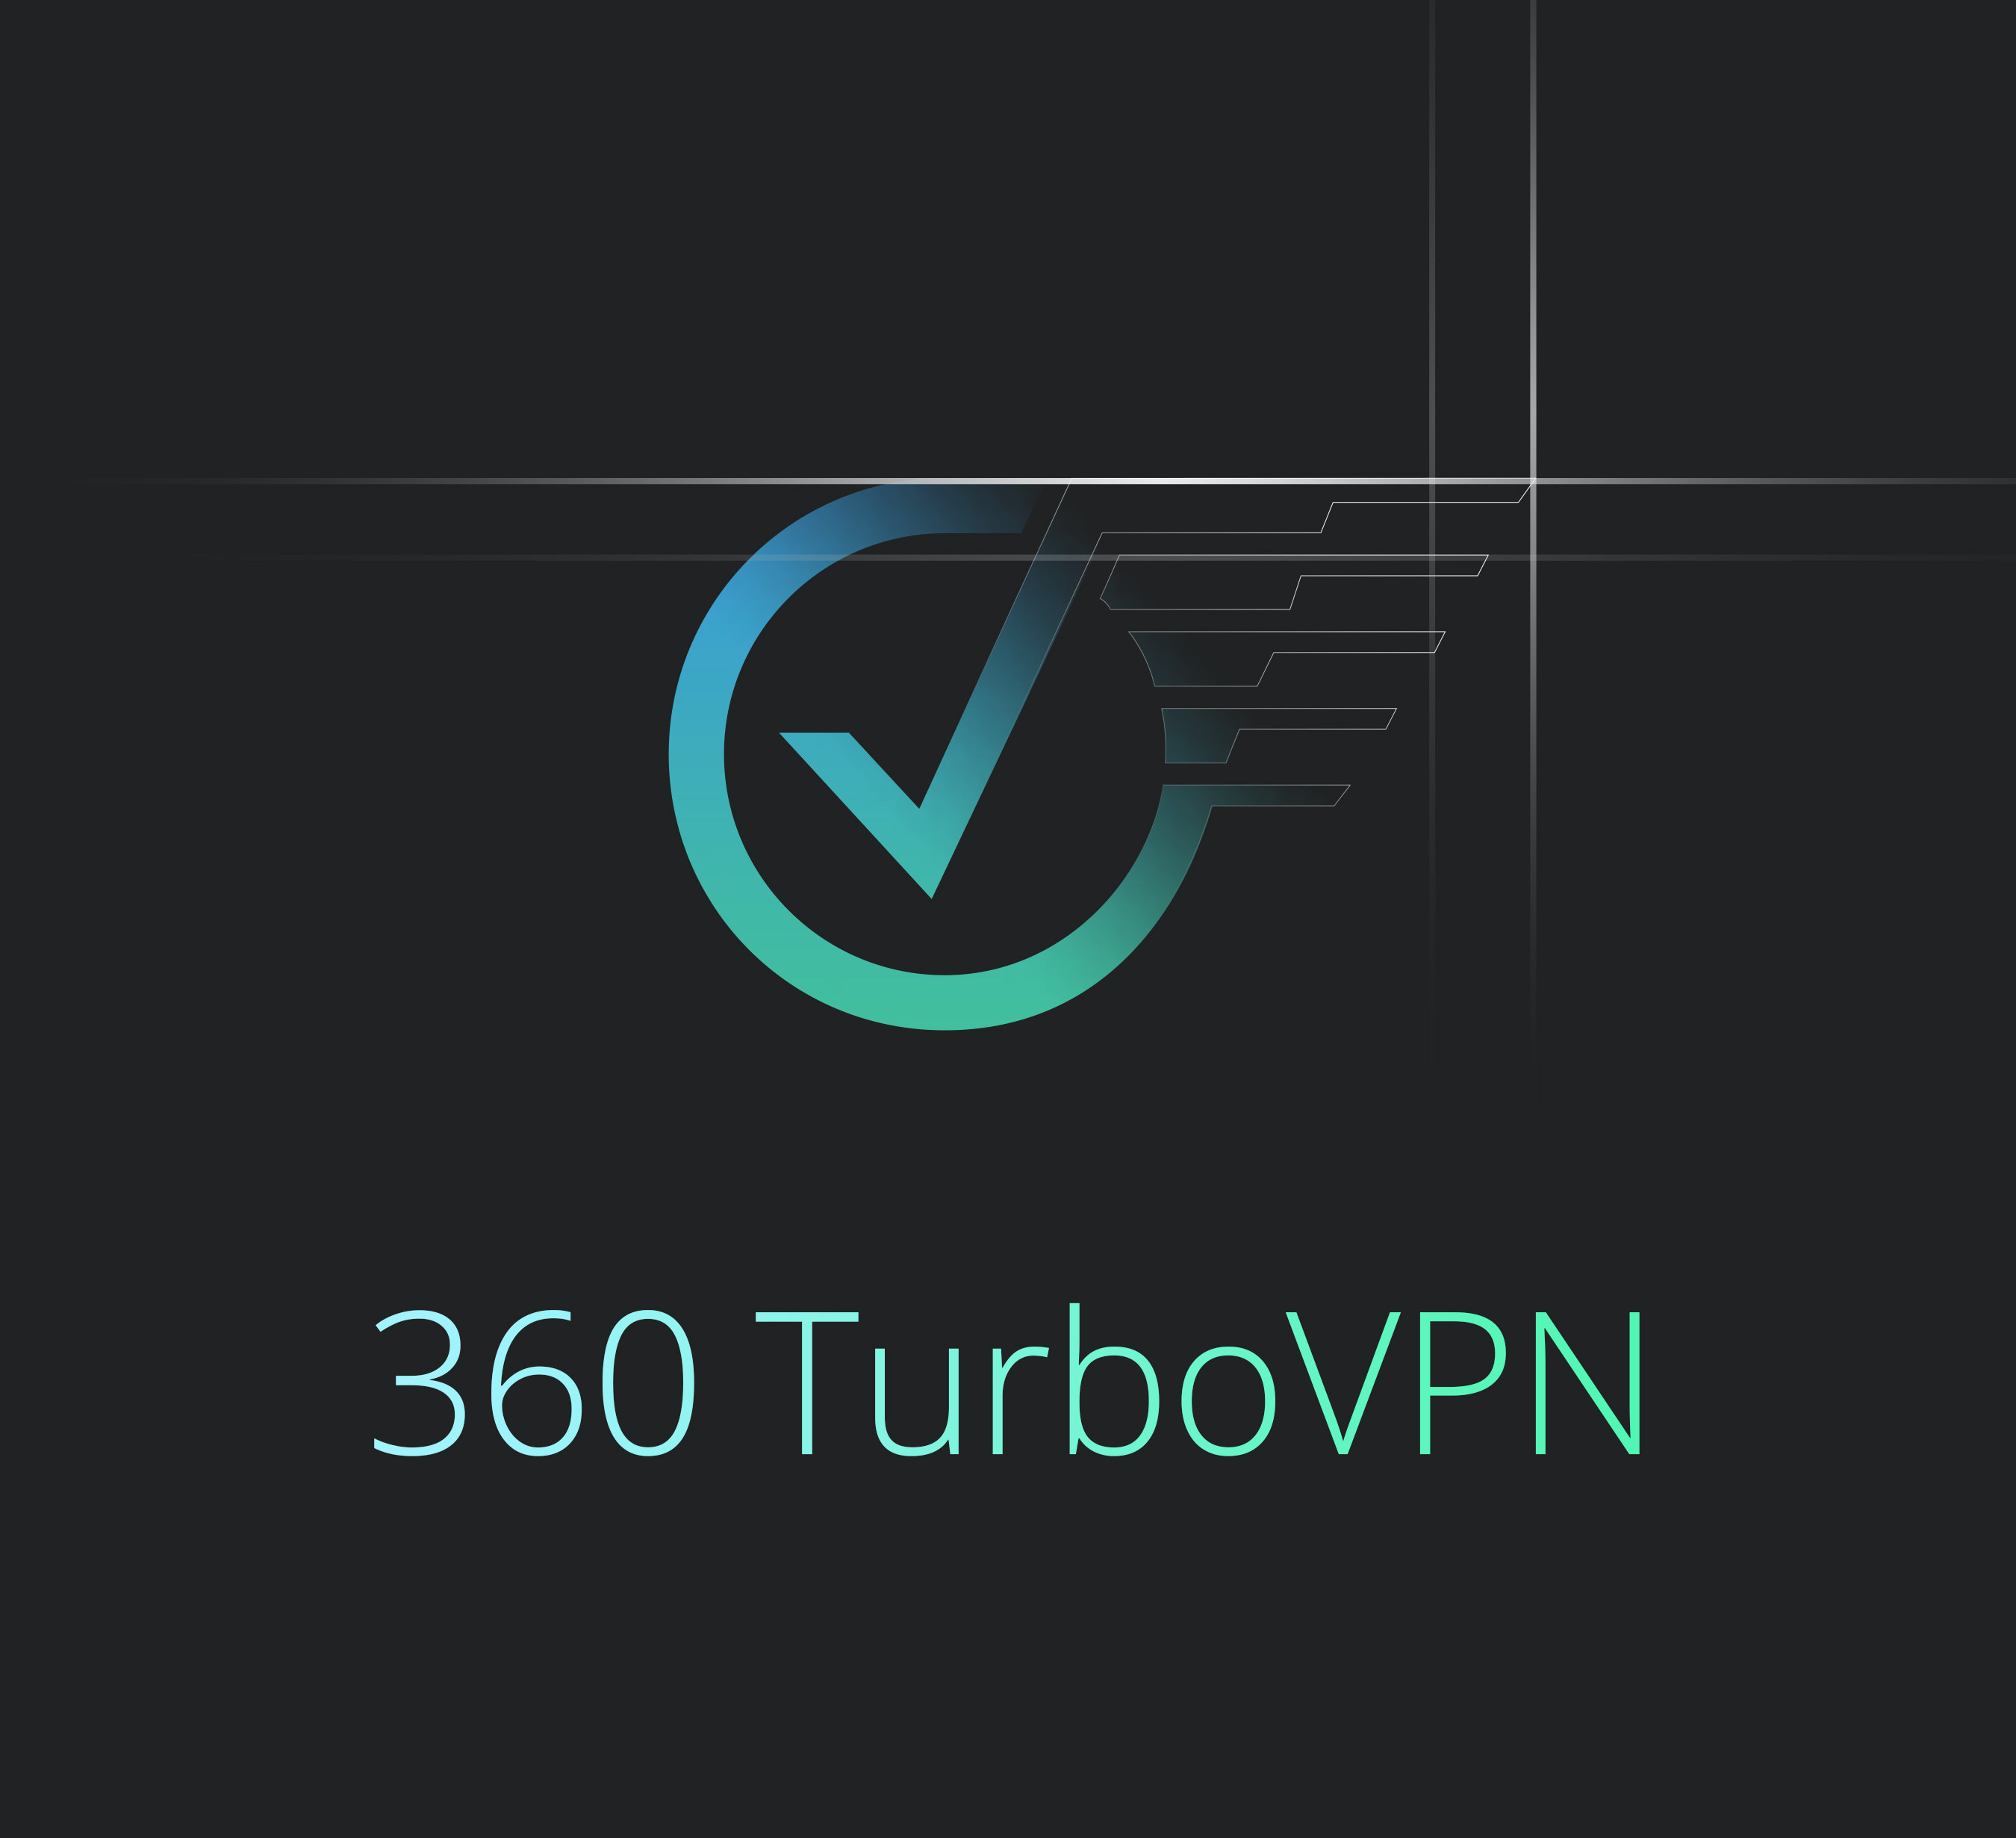 360 TurboVPN Newly Released